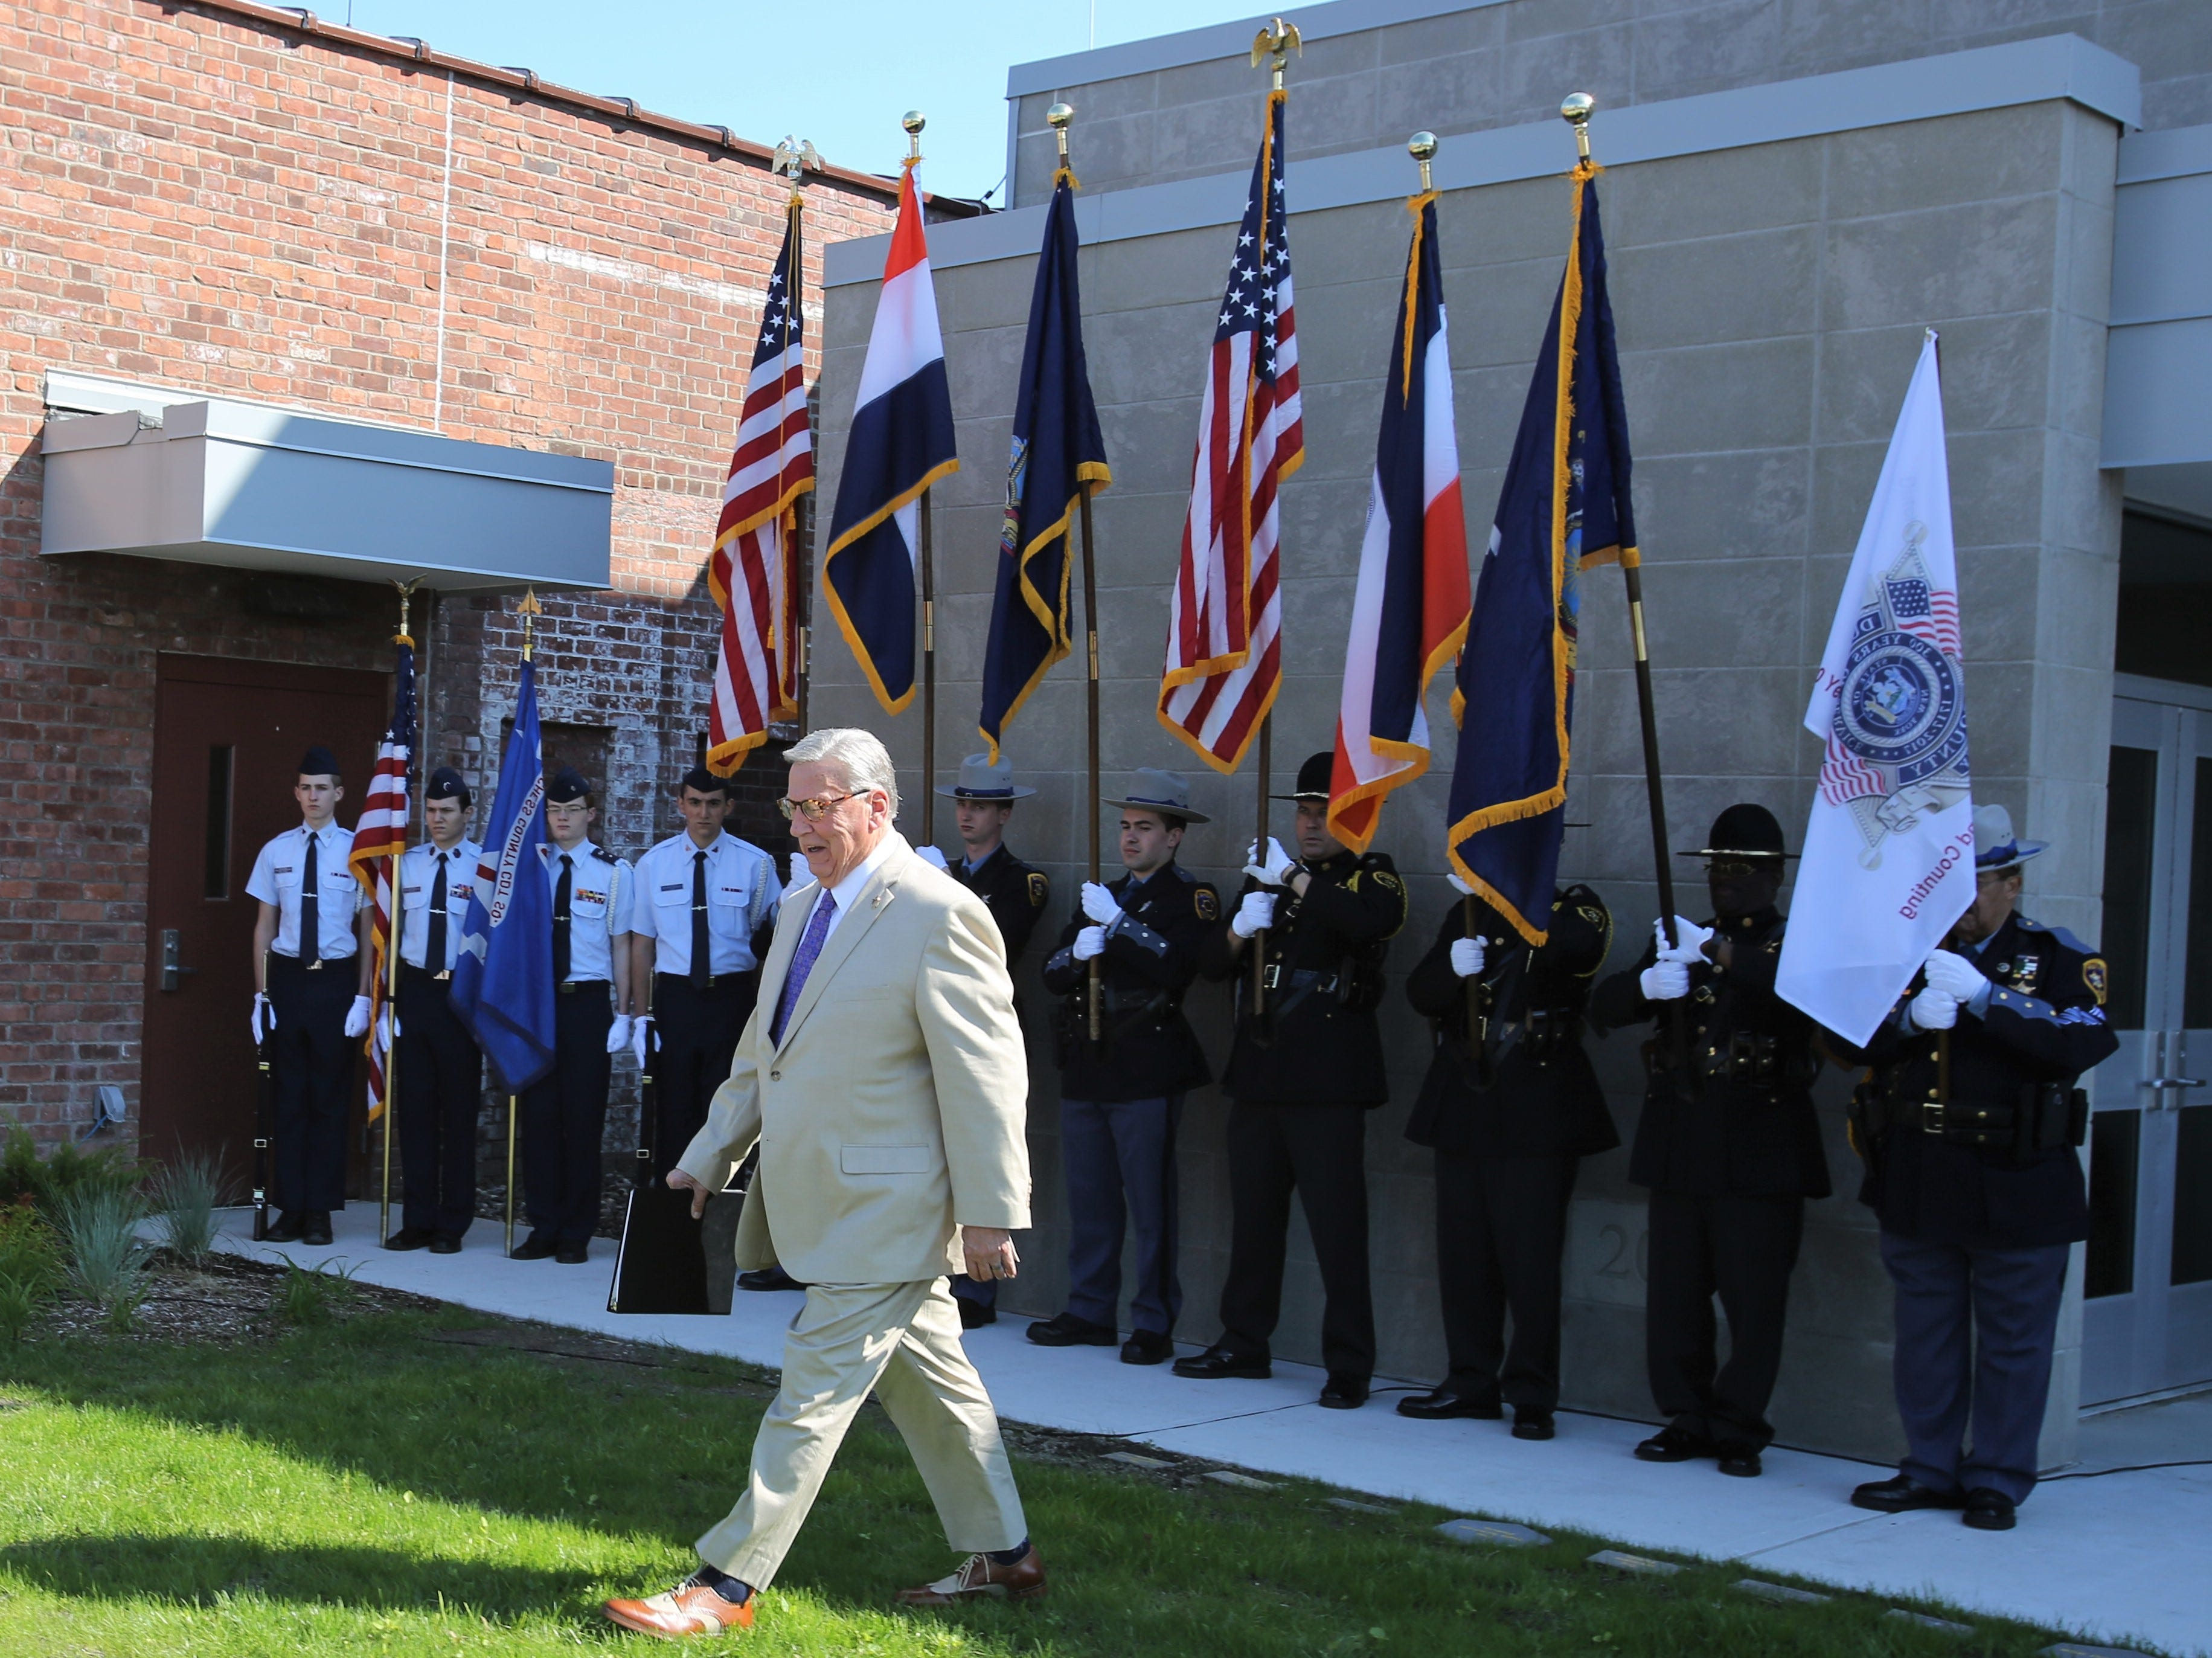 Dutchess County Sheriff's Butch Anderson walks to the podium to speak of the sacrifice of law enforcement men and women at the sheriff's office on May 16, 2019.